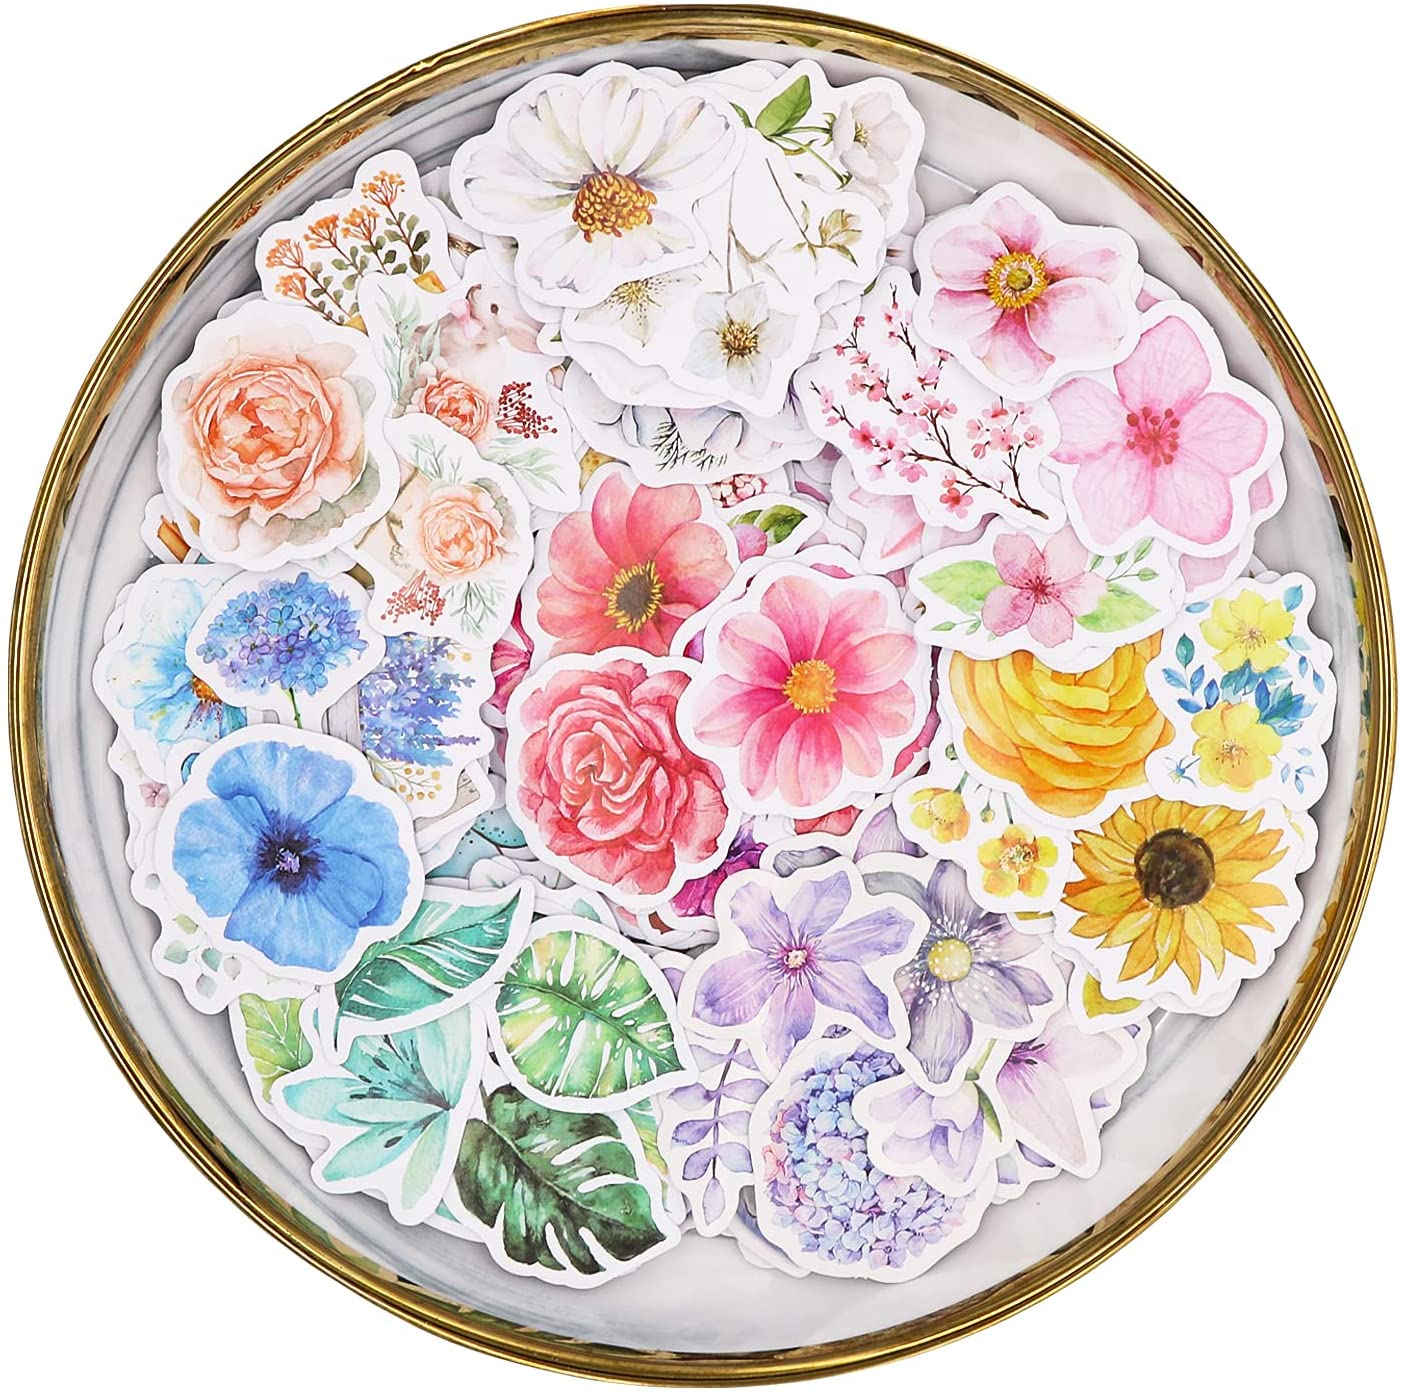 Knaid Flower Stickers Set (360 Pieces) - Decorative Colorful Assorted Floral Sticker for Scrapbooking, Kid DIY Arts Crafts, Album, Bullet Journals, Junk Journal, Planners, Laptops and Phone